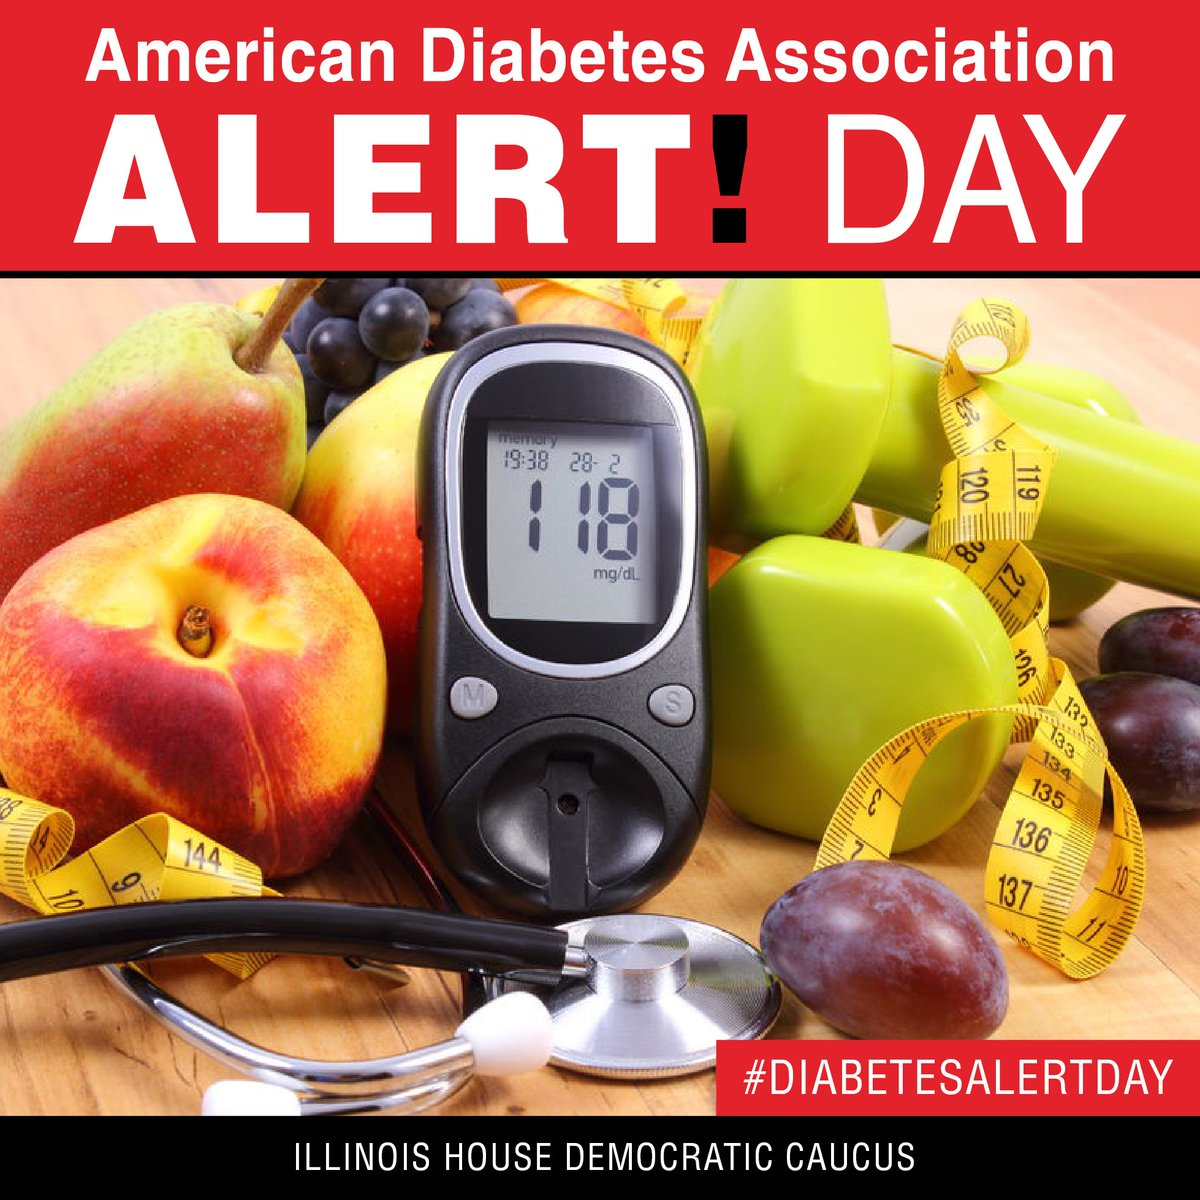 test Twitter Media - On #DiabetesAlertDay, we are joining the @AmDiabetesAssn to raise awareness of risk factors. Take the free risk test https://t.co/WQPQtDyiRz https://t.co/aw7P6JS2rE